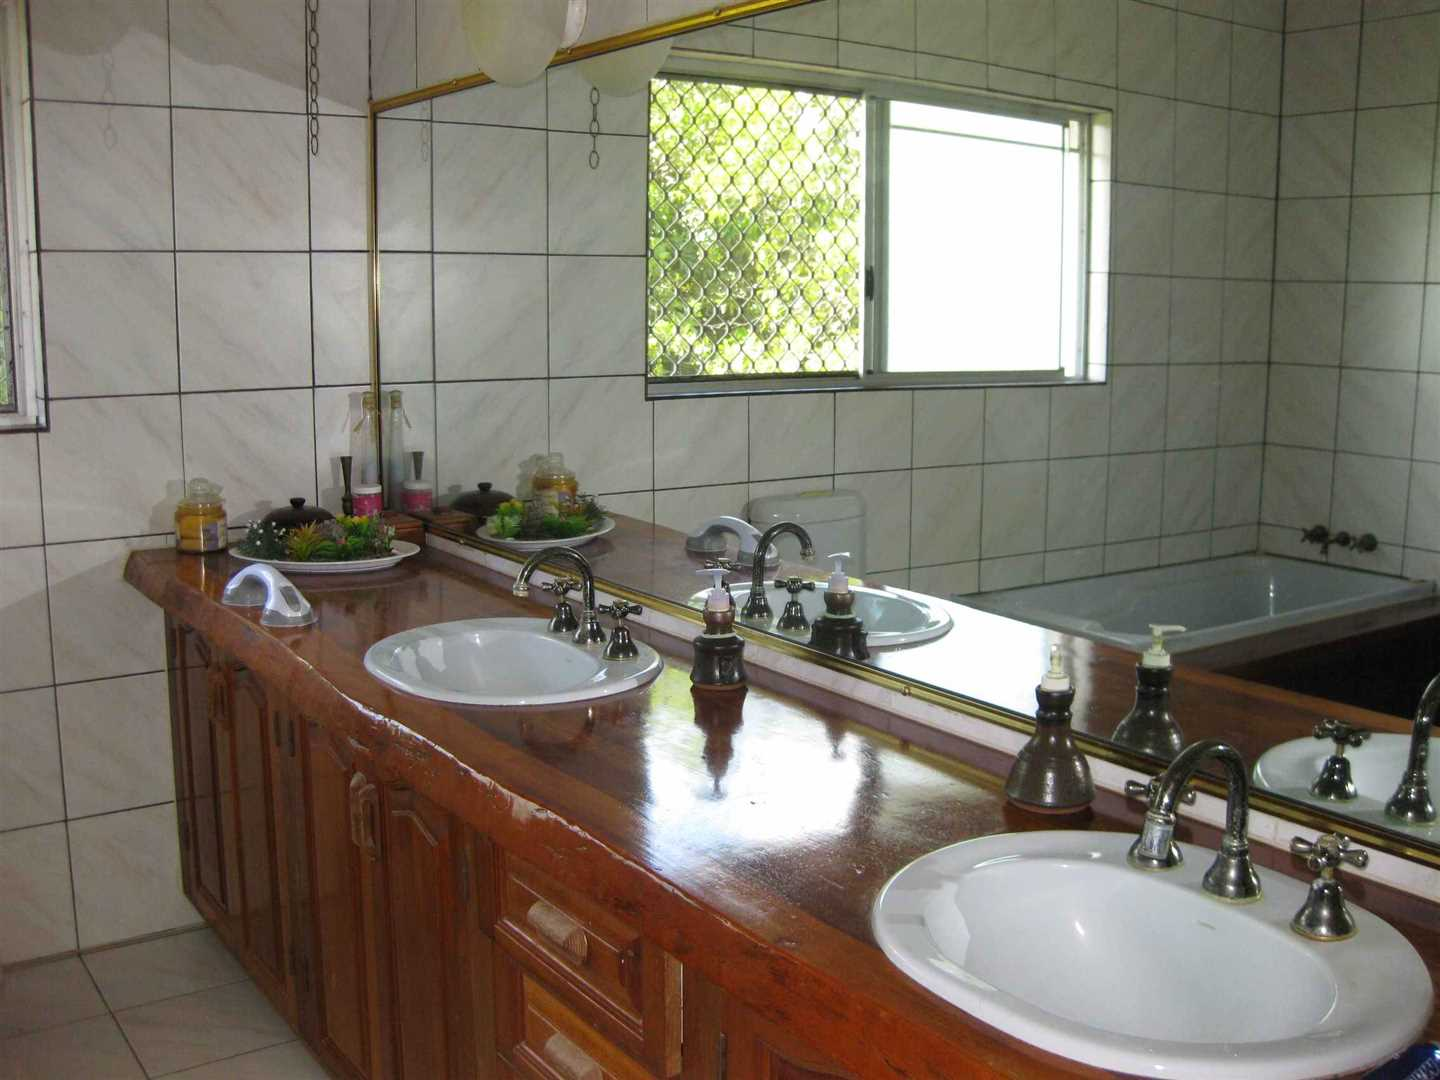 Inside view of part of home showing part of the en-suite bathroom